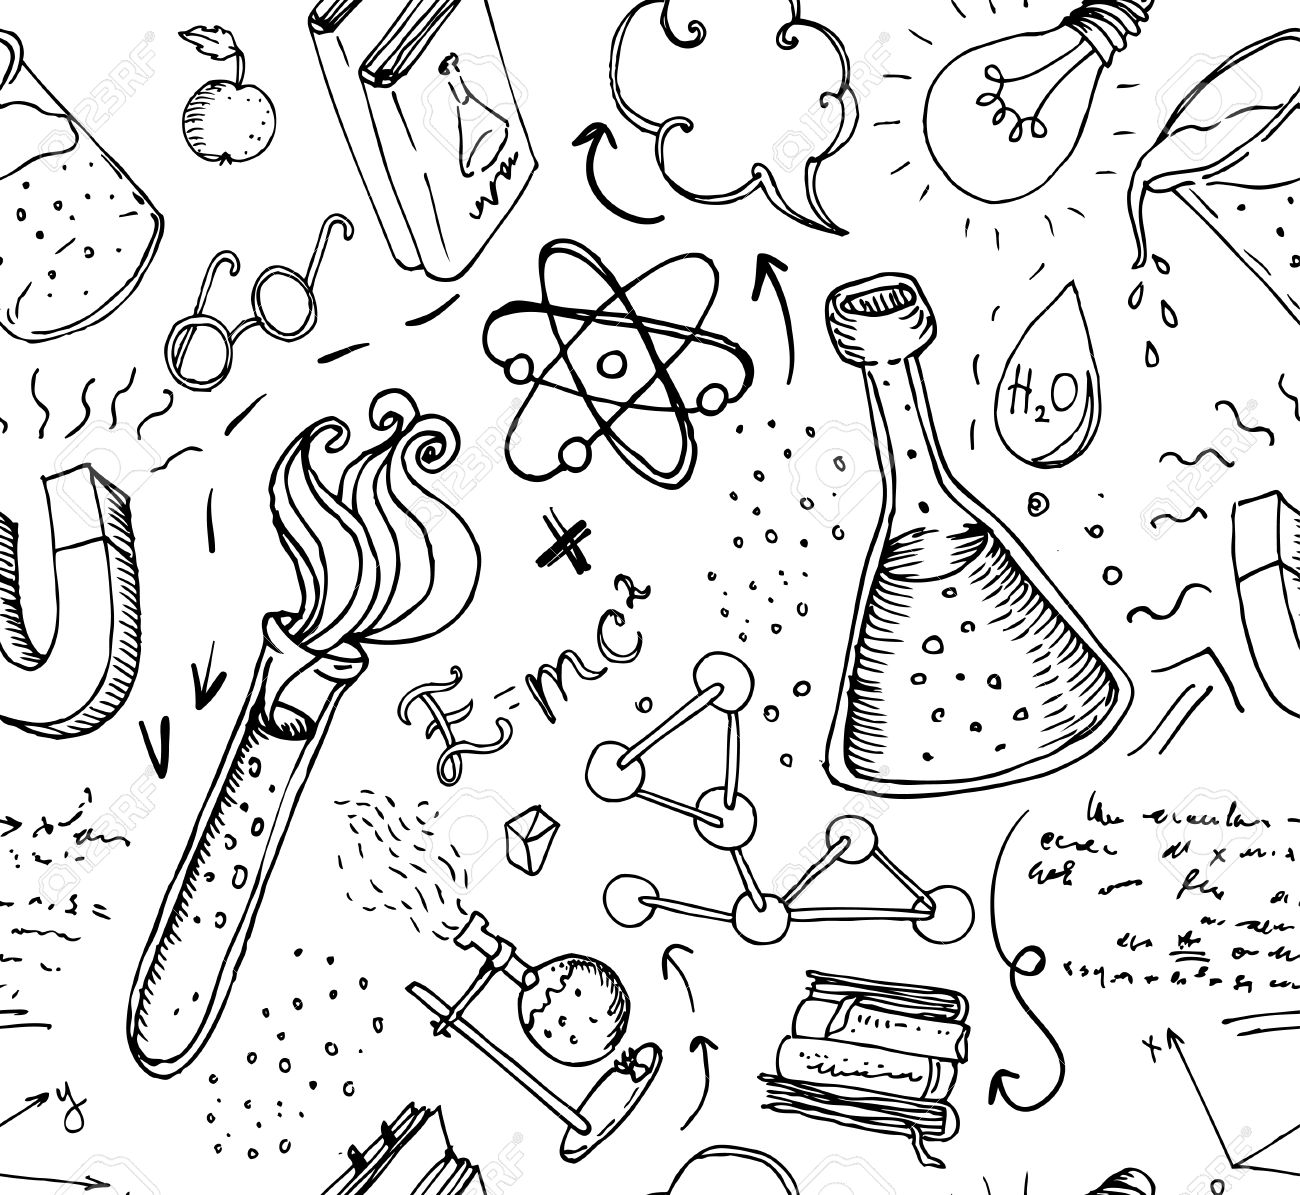 Back to School: science lab objects doodle vintage style sketches seamless pattern, vector illustration. - 44359809